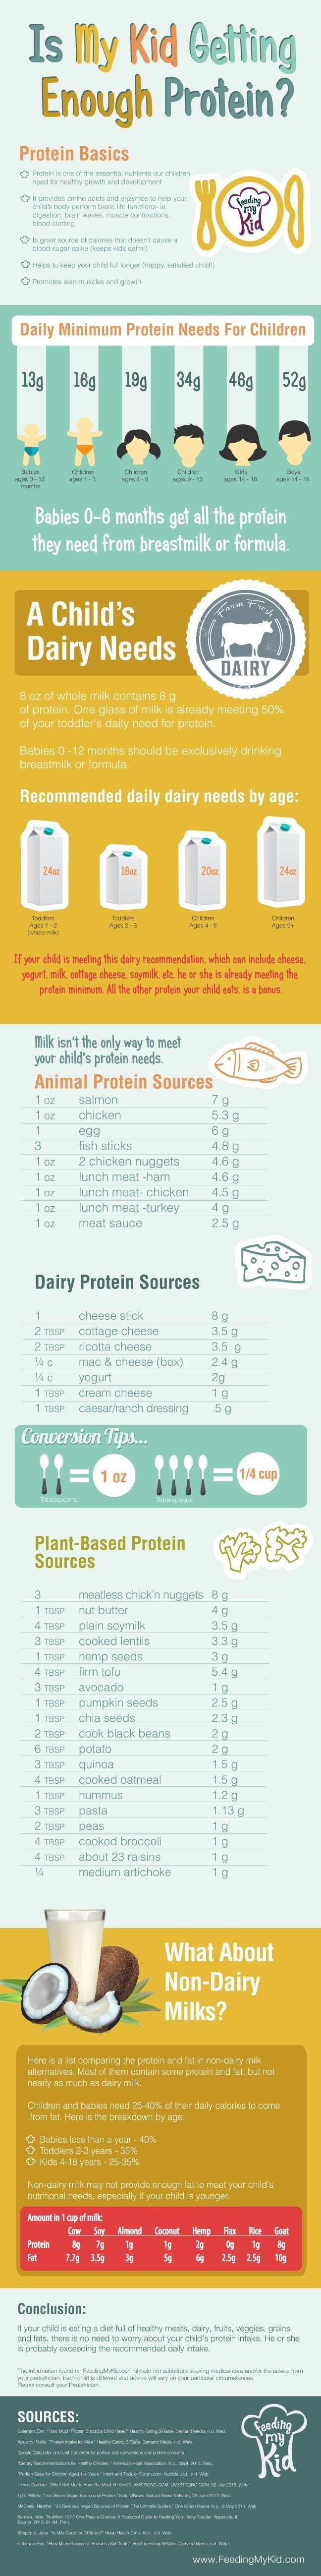 Is it enough protein for my child? #infographic